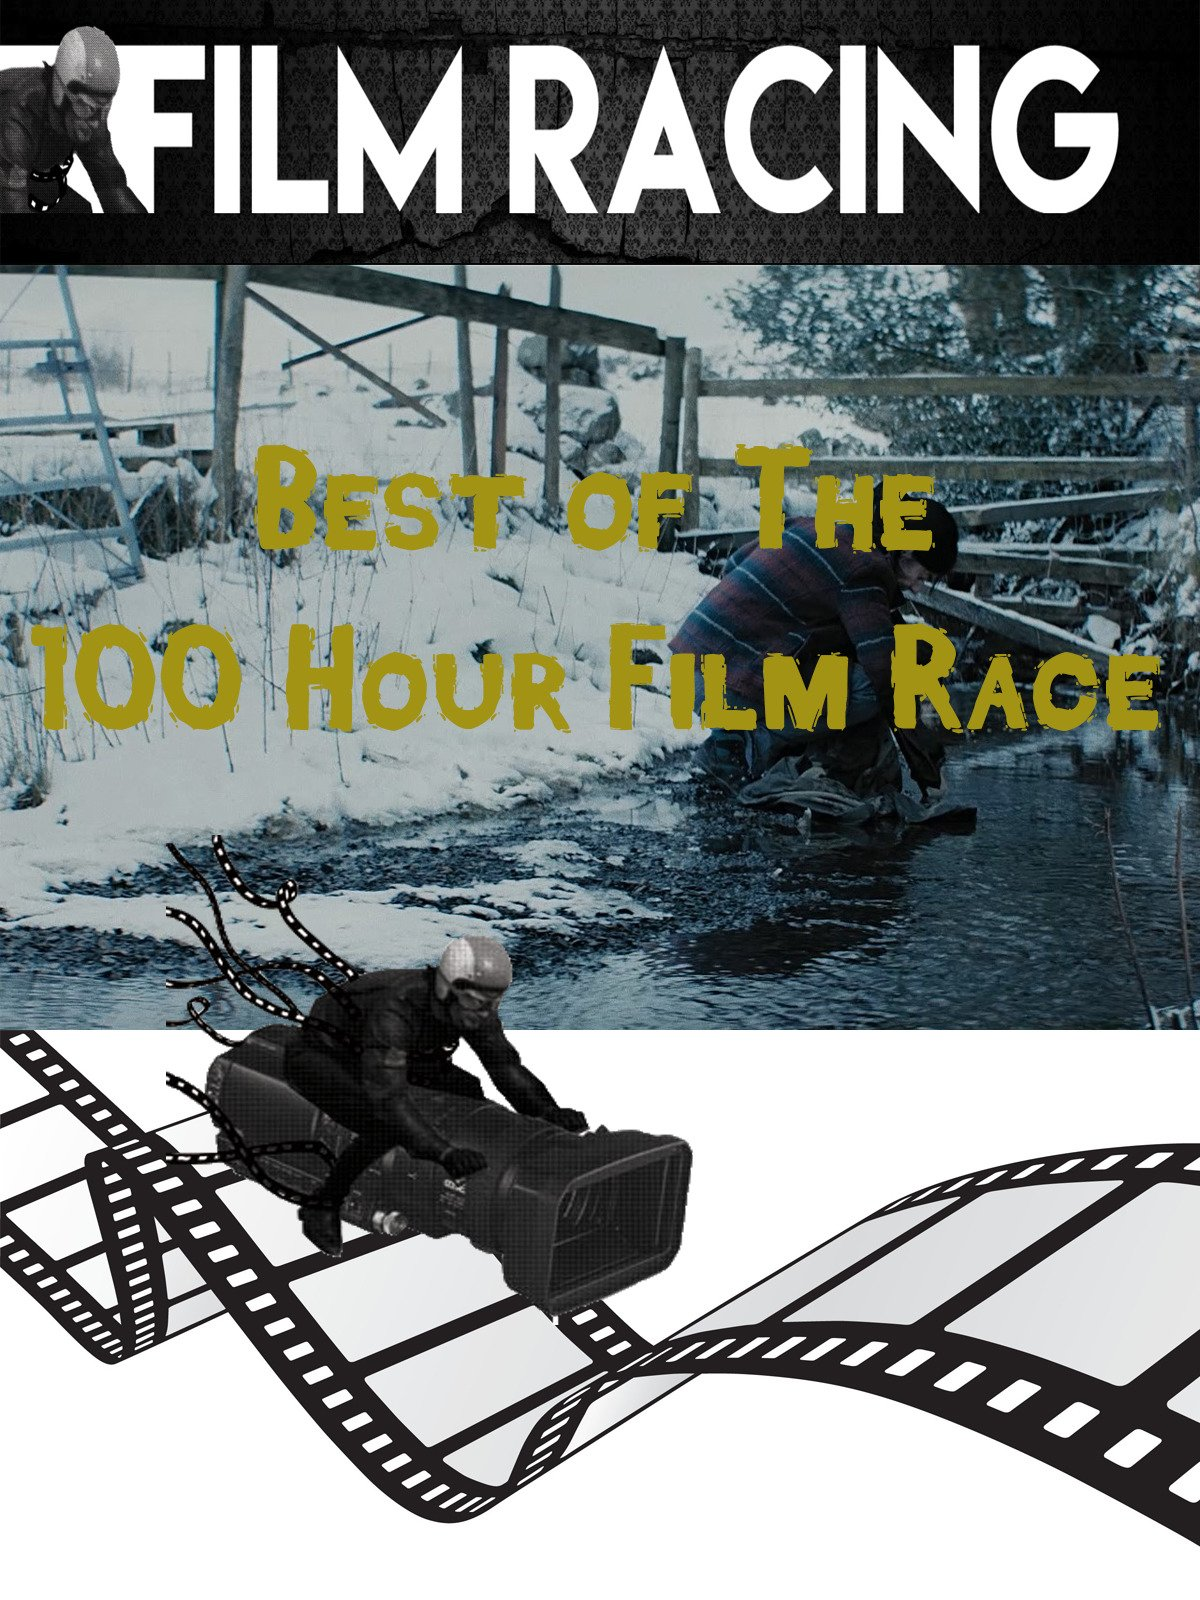 Best of the 100 Hour Film Race